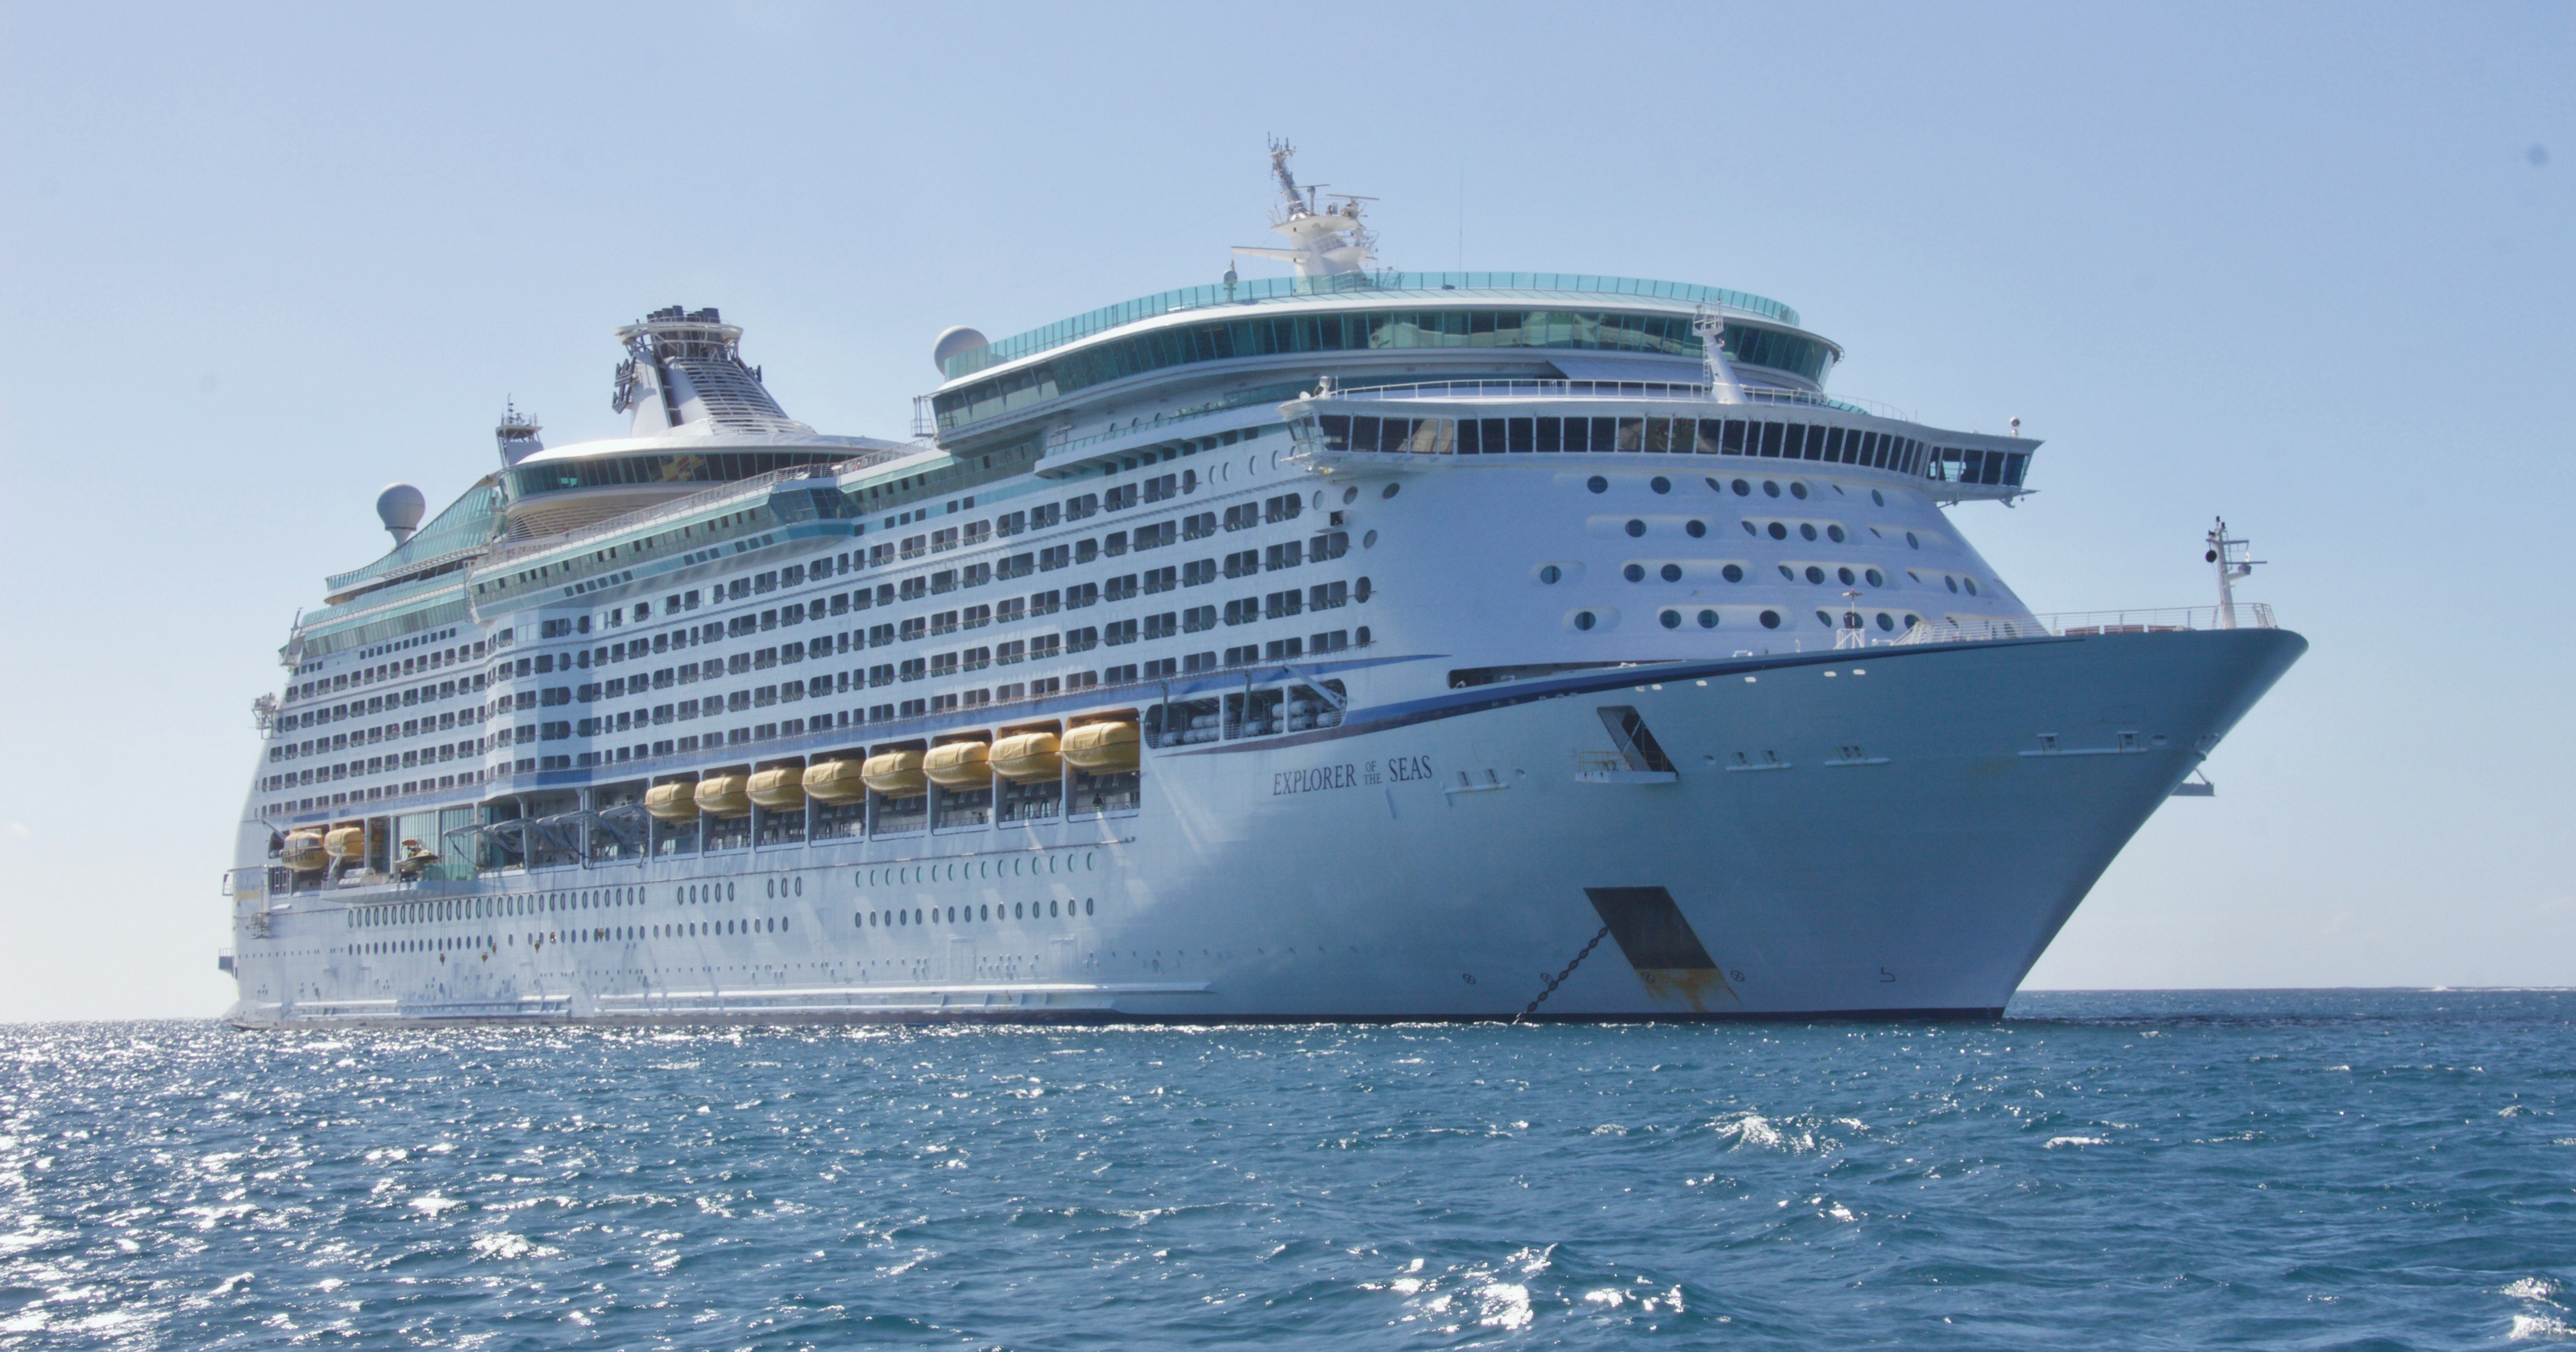 How to Stay Safe While Working on a Cruise Ship